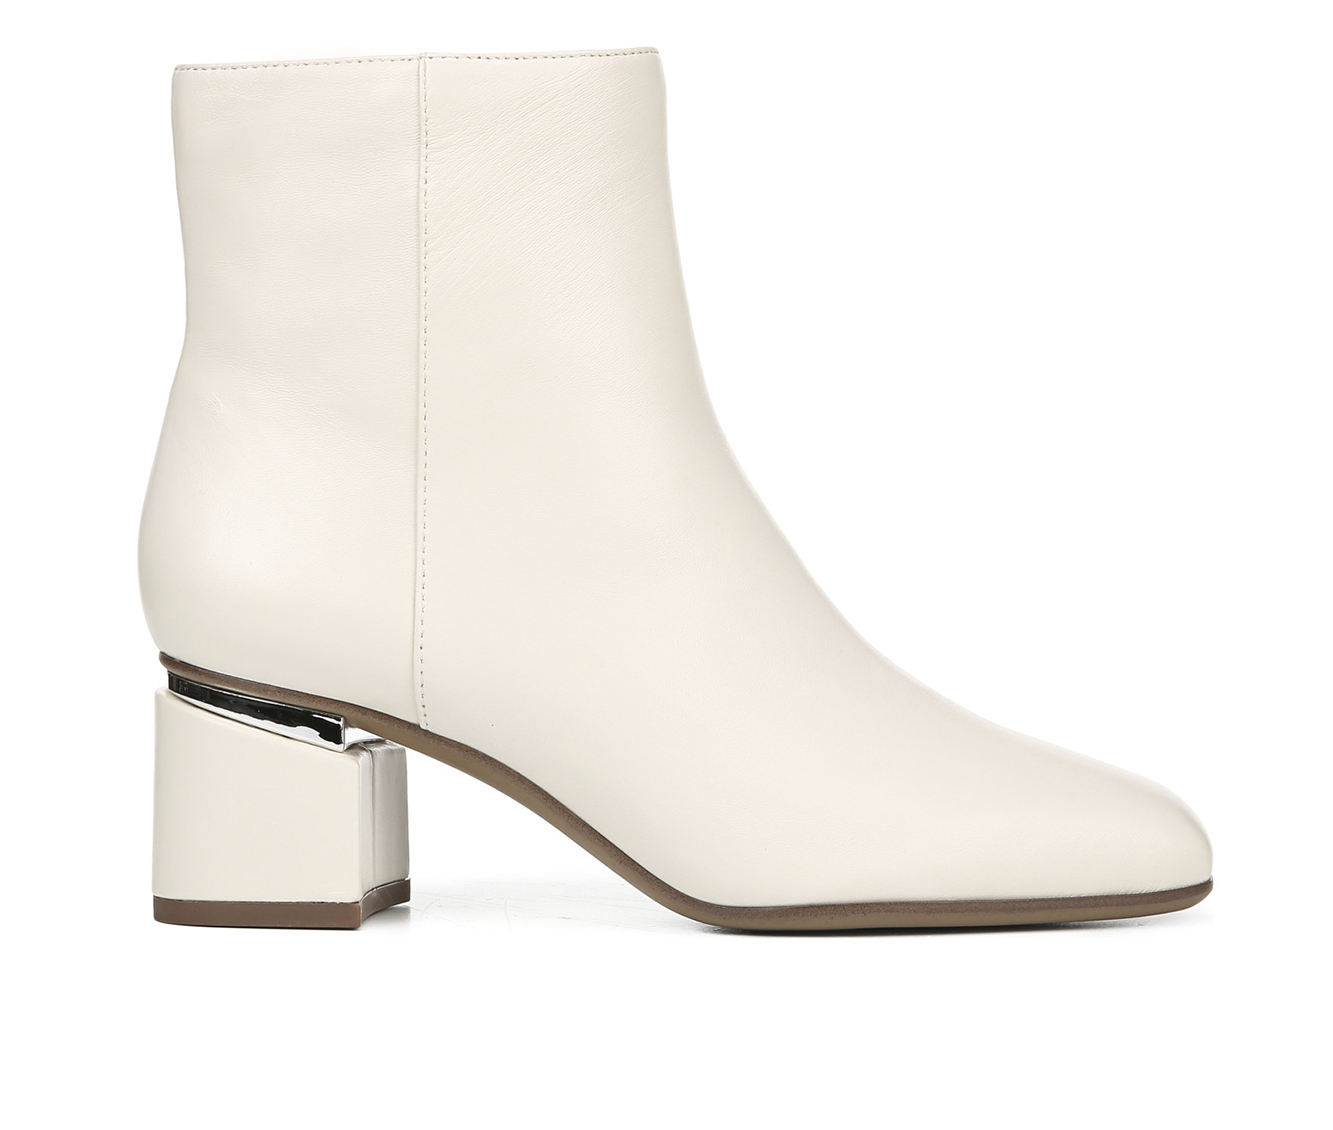 Franco Sarto Marquee Women's Boots (White - Leather)